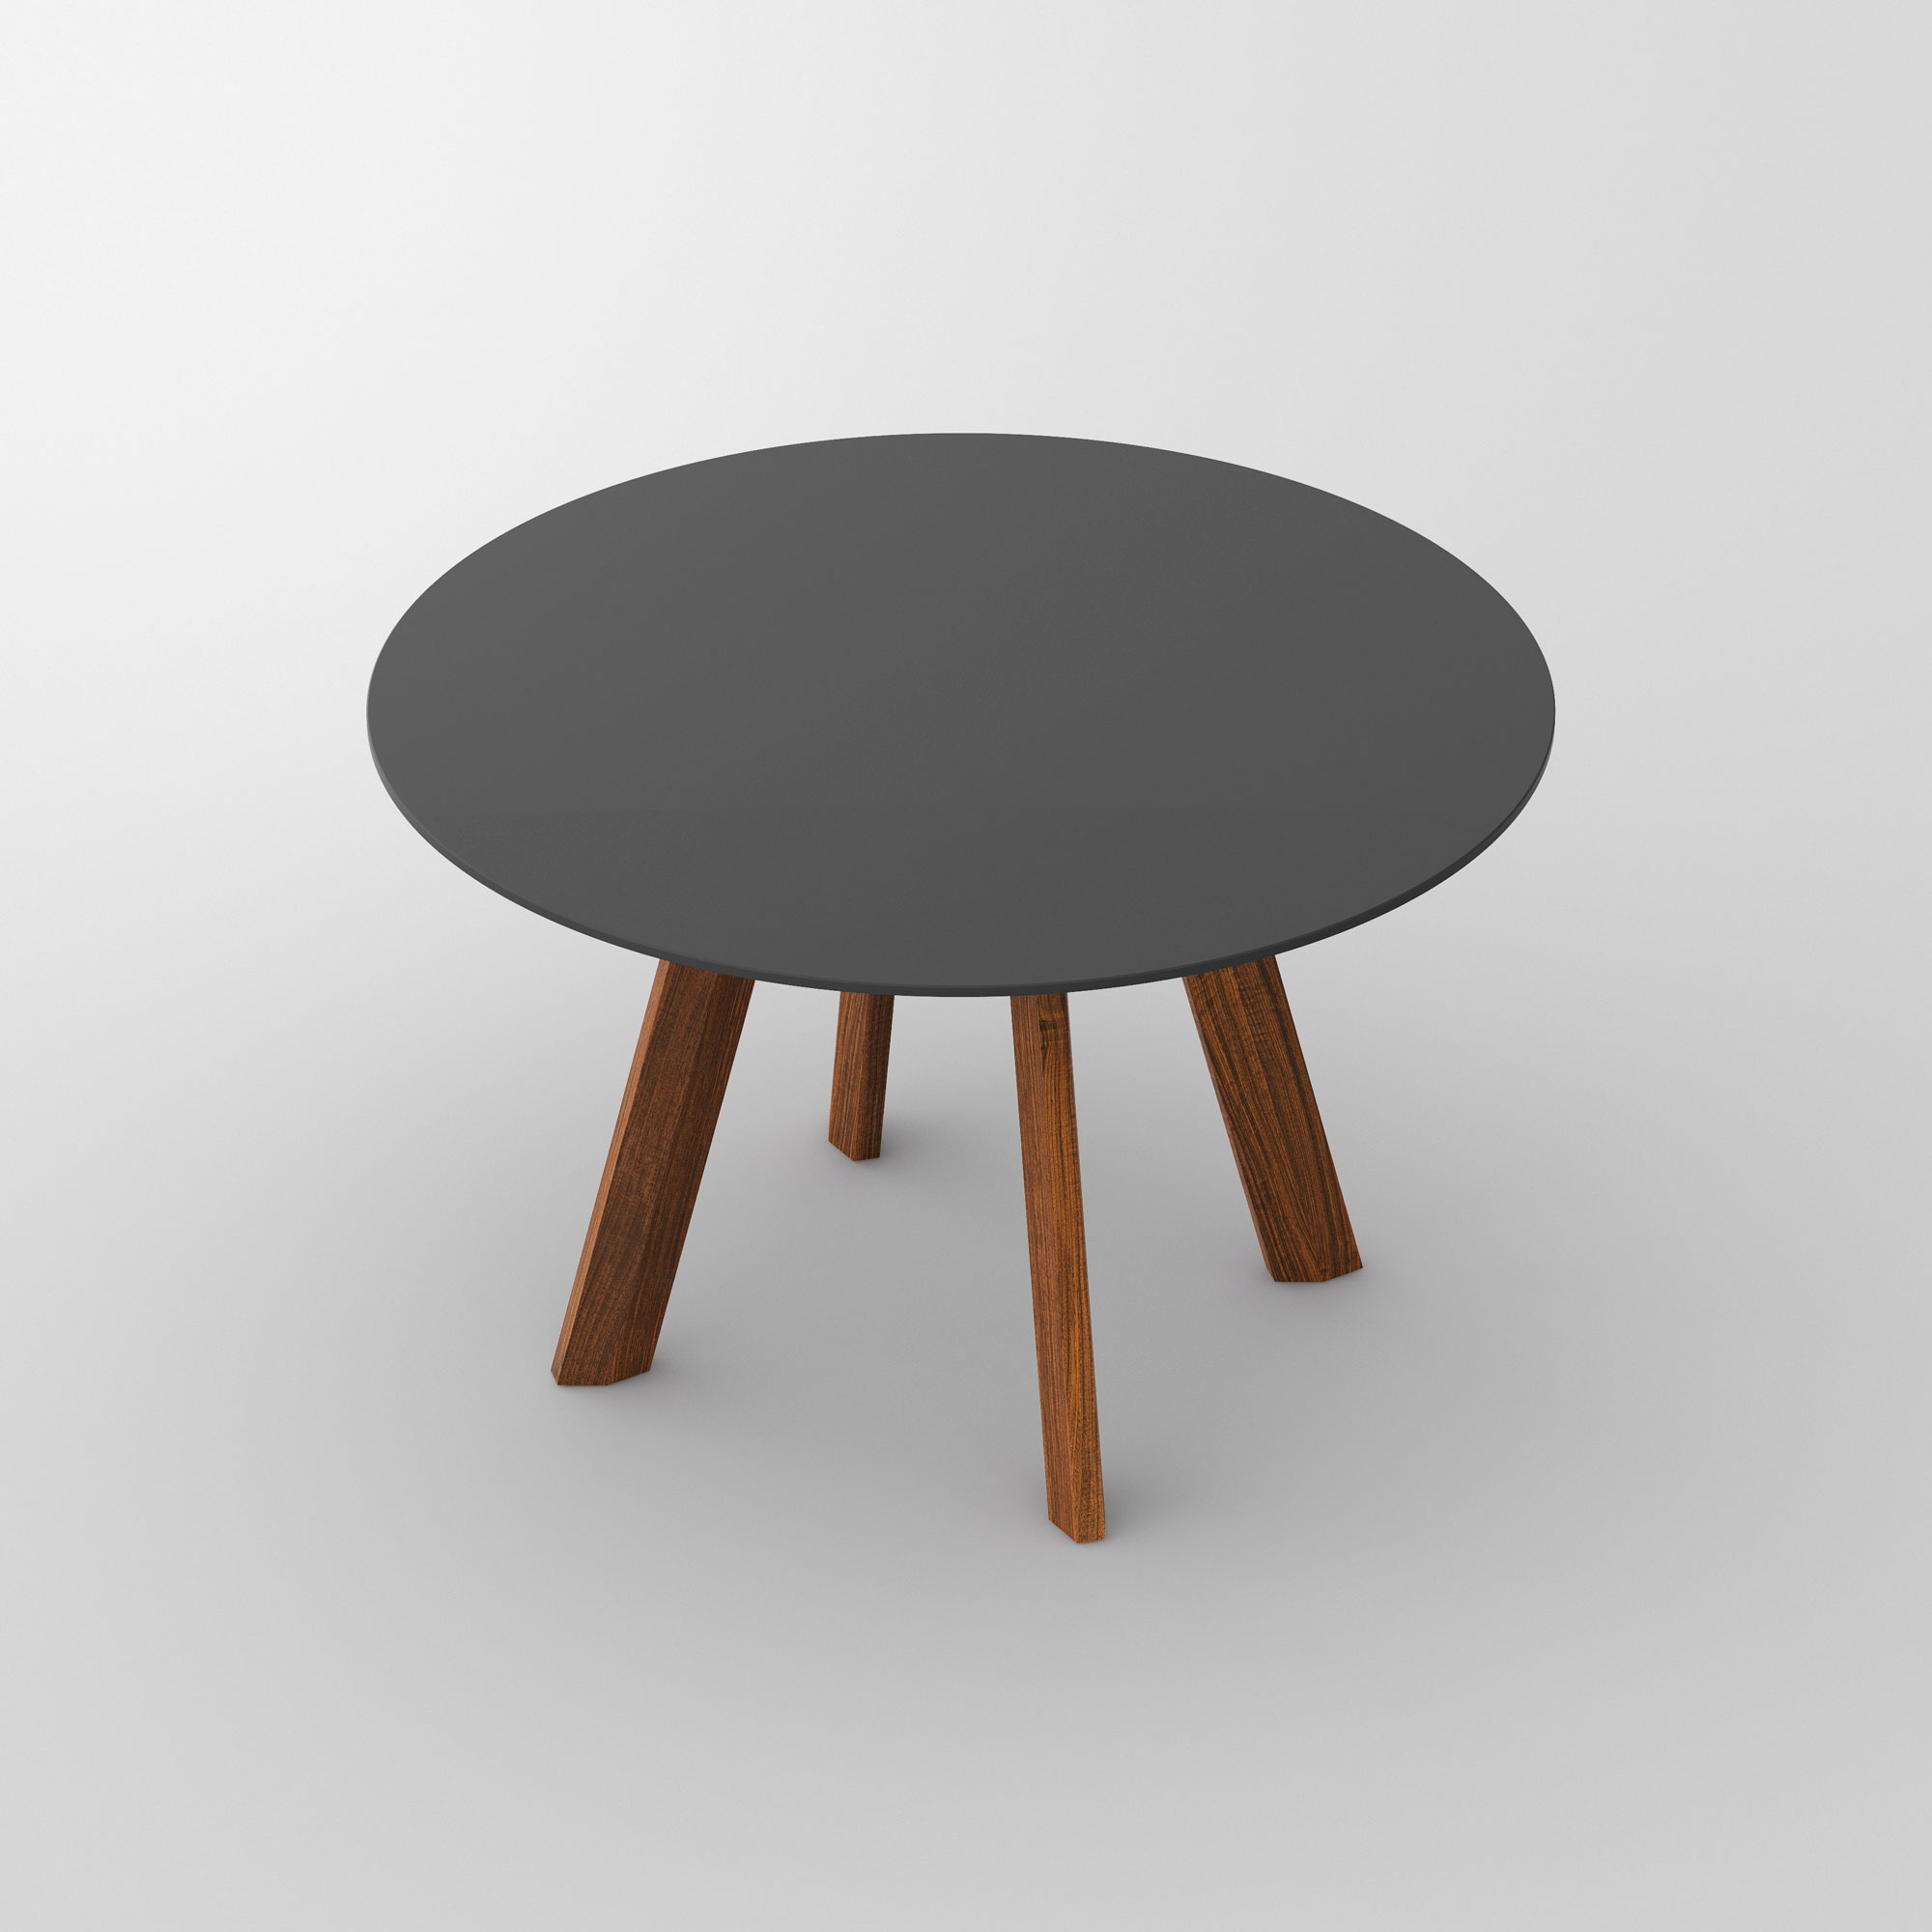 Round Linoleum Table RHOMBI ROUND LINO cam3 custom made in solid wood by vitamin design